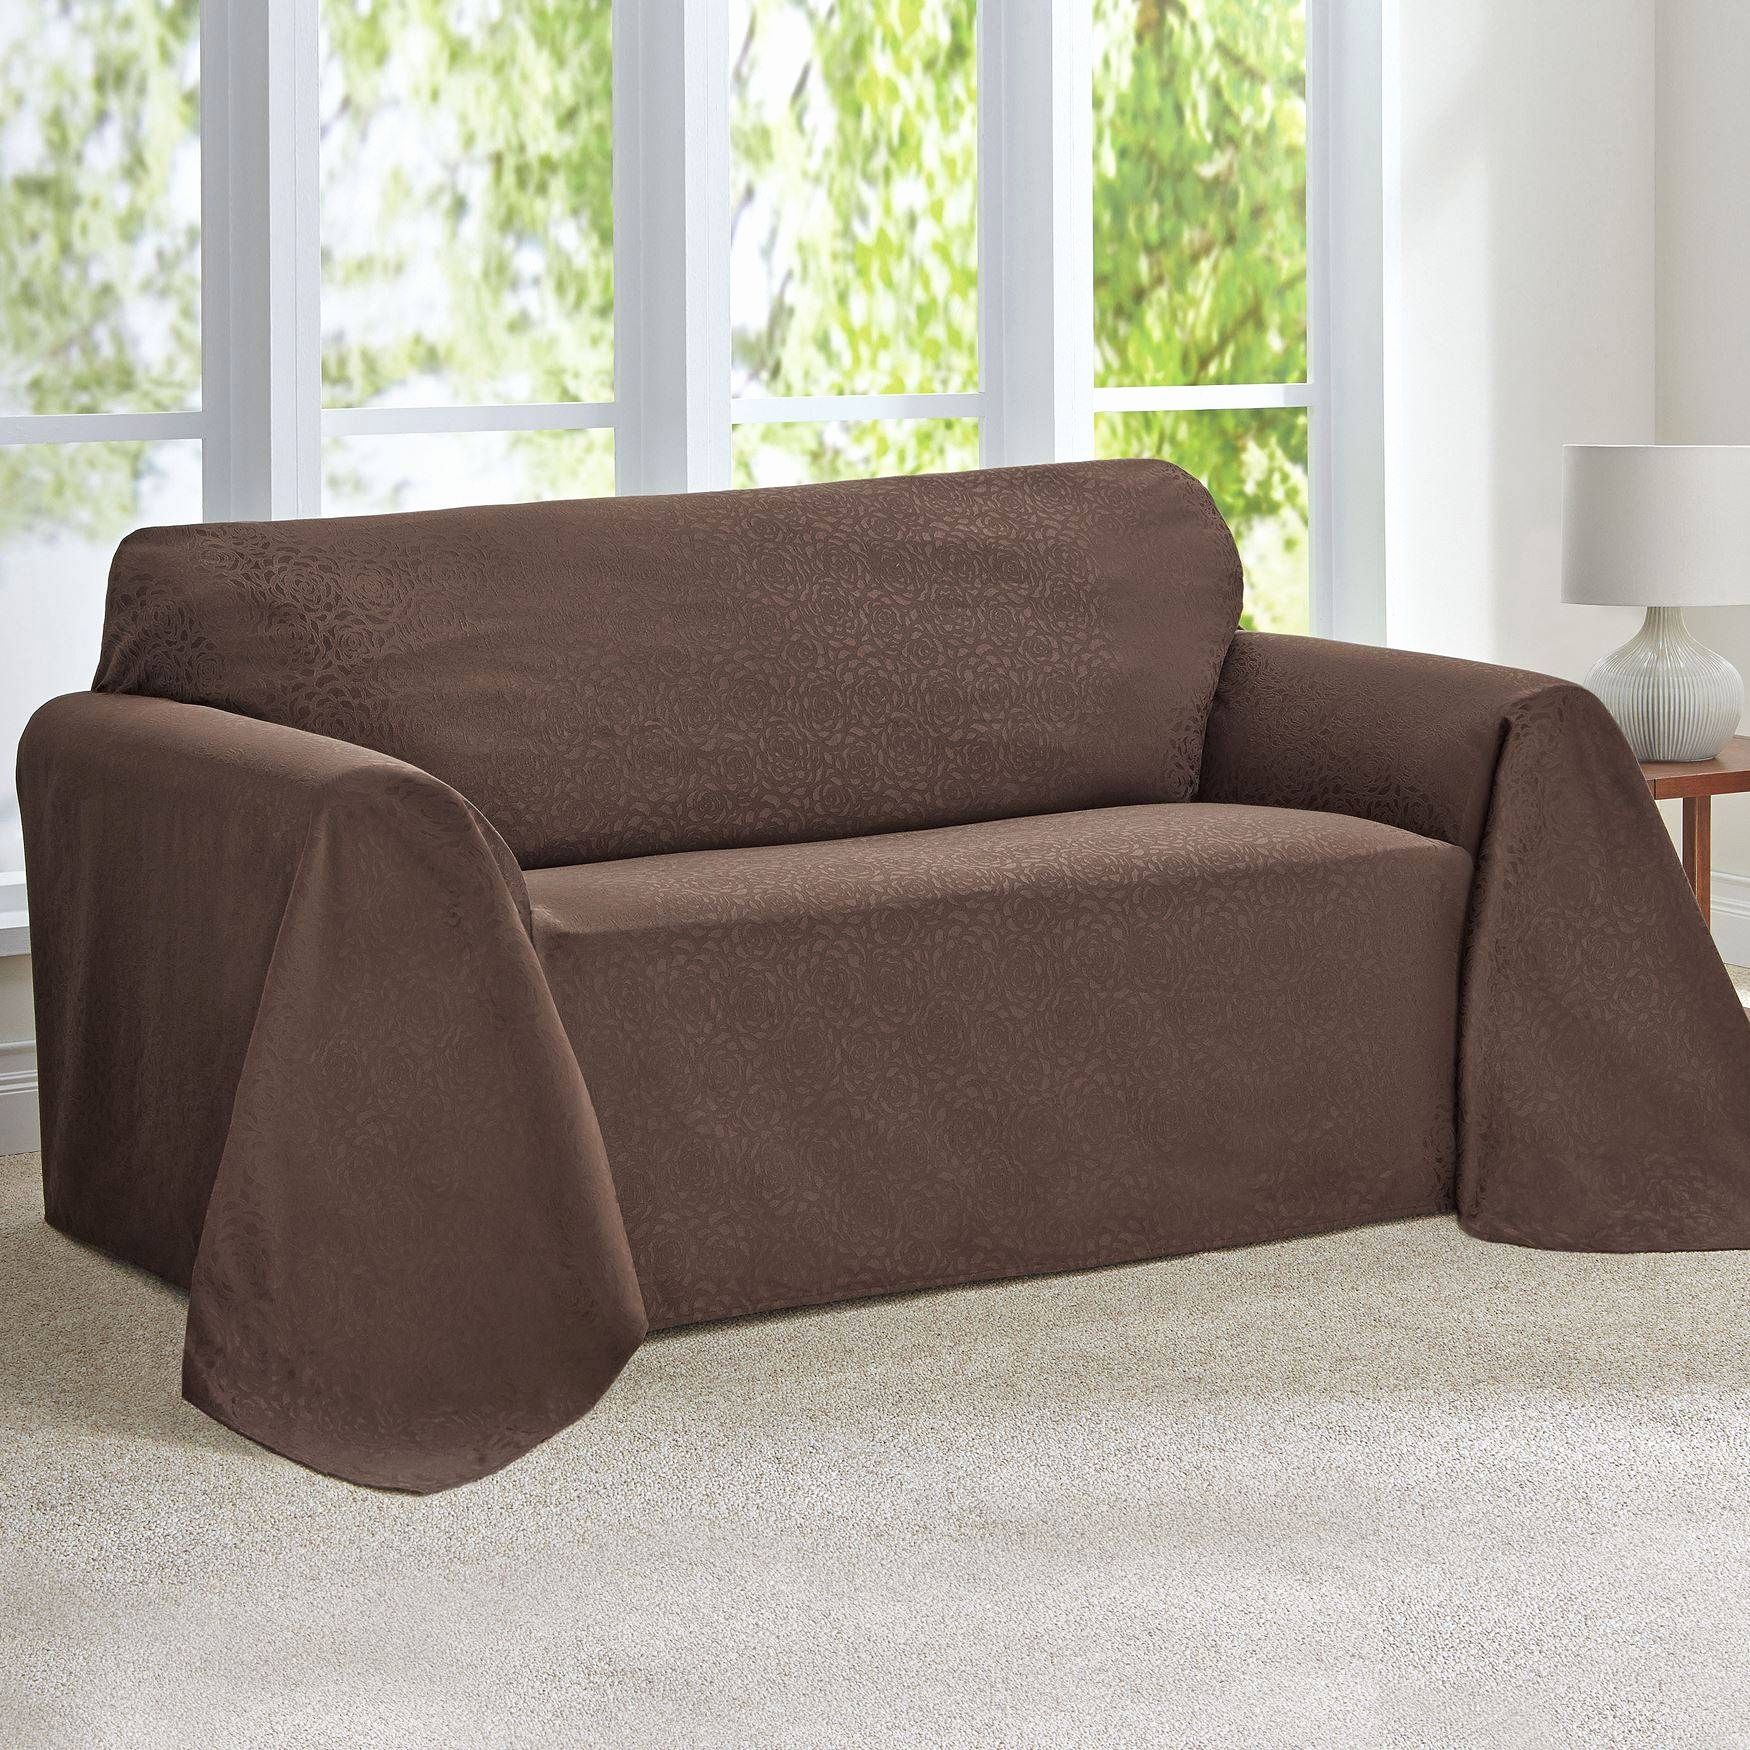 Inspirational sofa and Chair Covers Pics Sofa and Chair